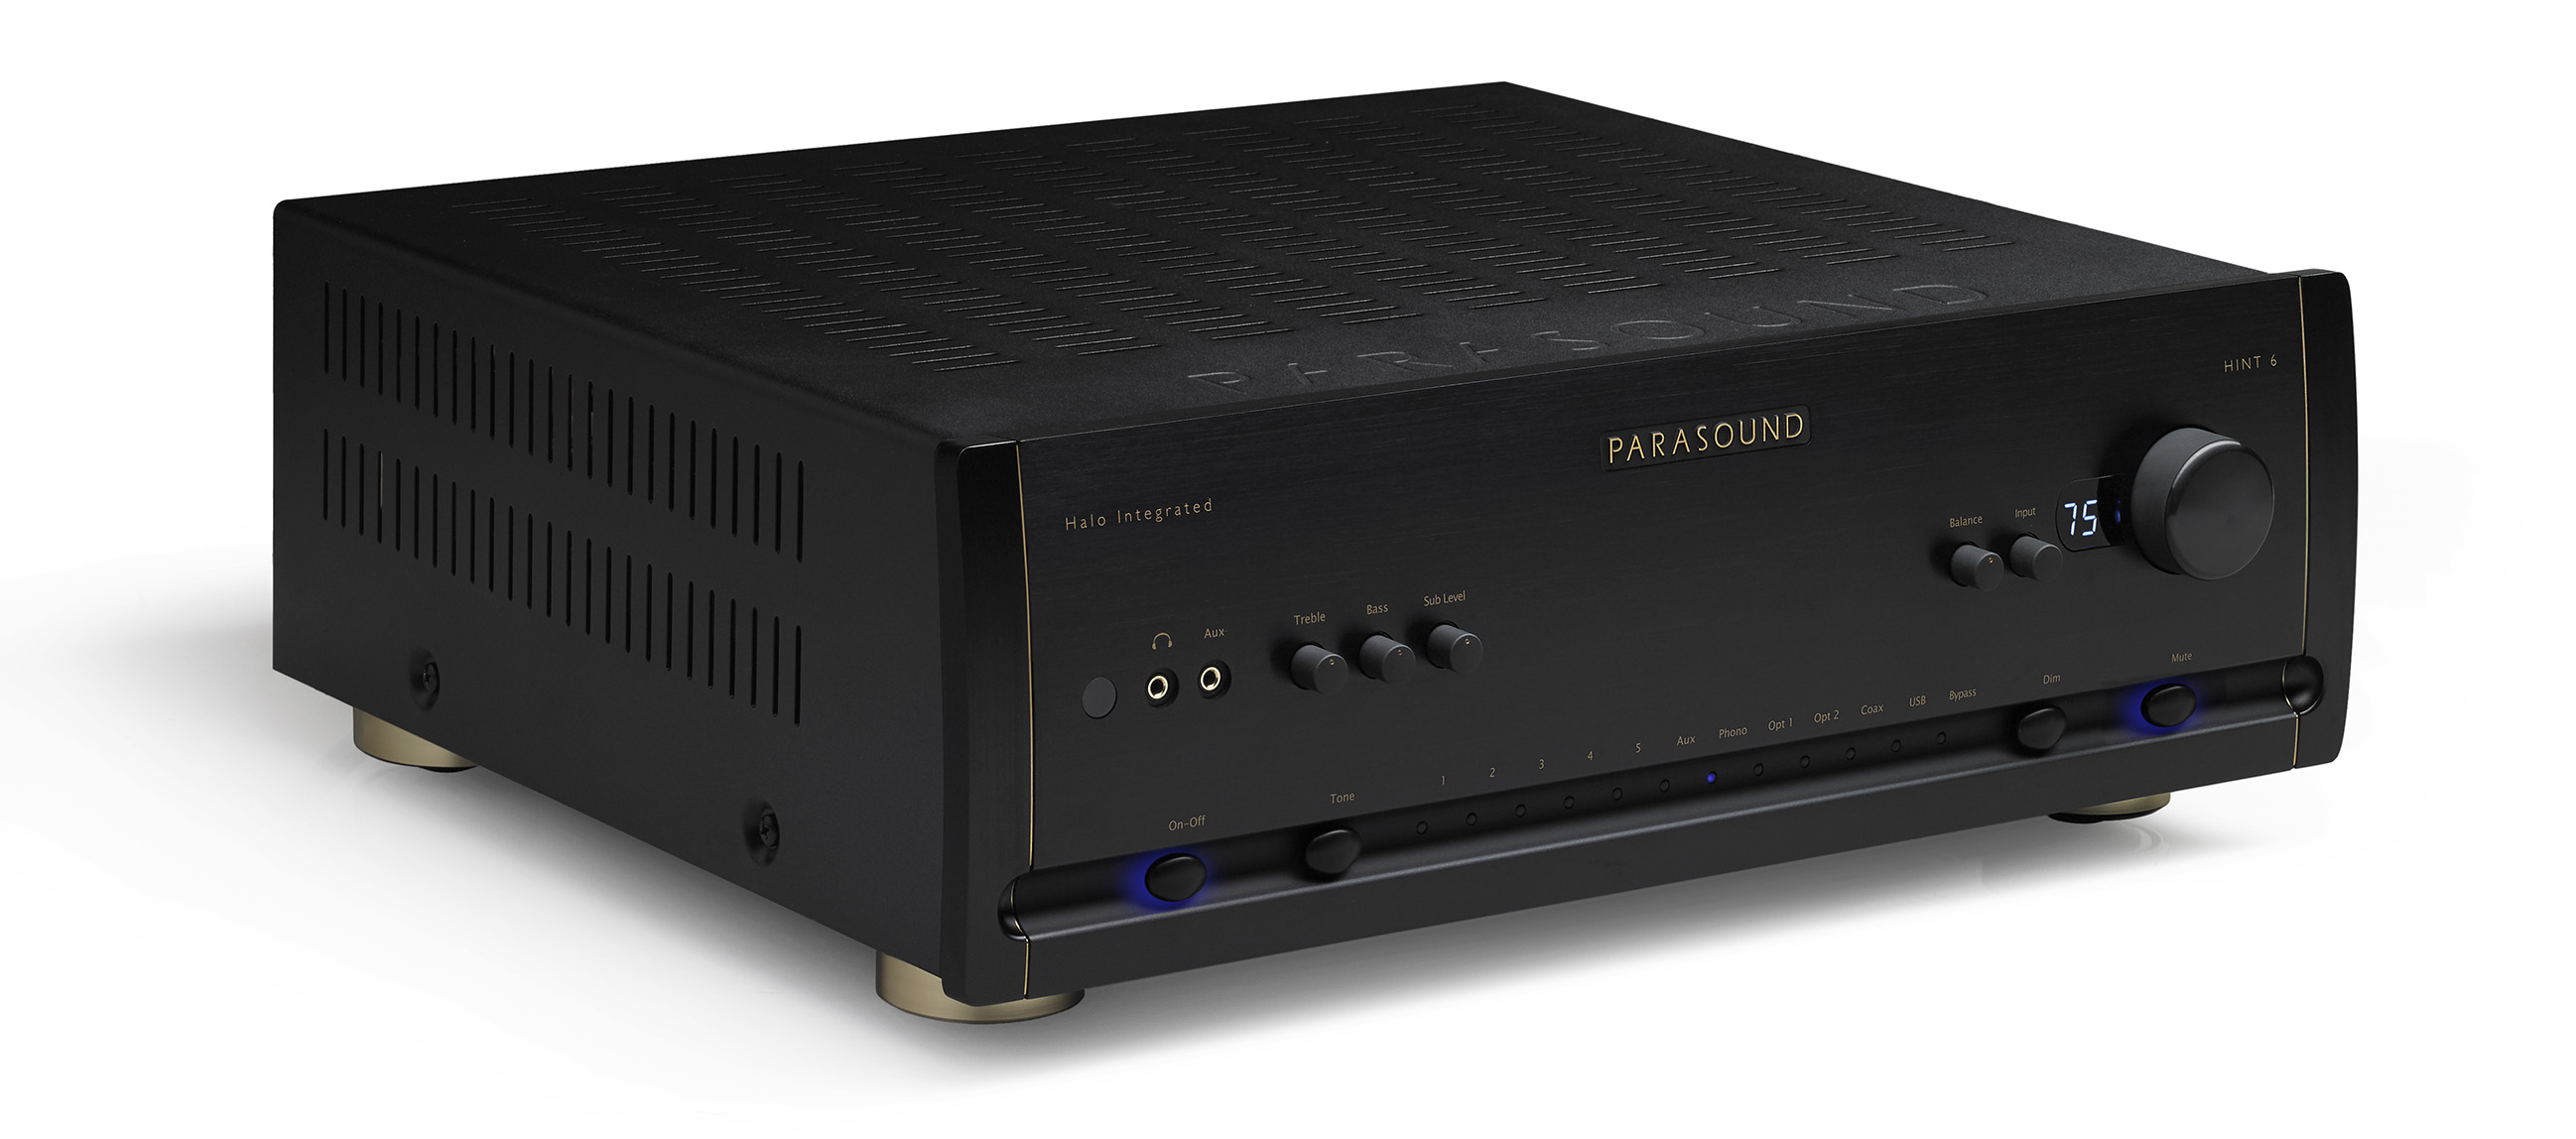 Model Hint 6 Halo Integrated Amplifier Parasound 70 Watt Mosfet